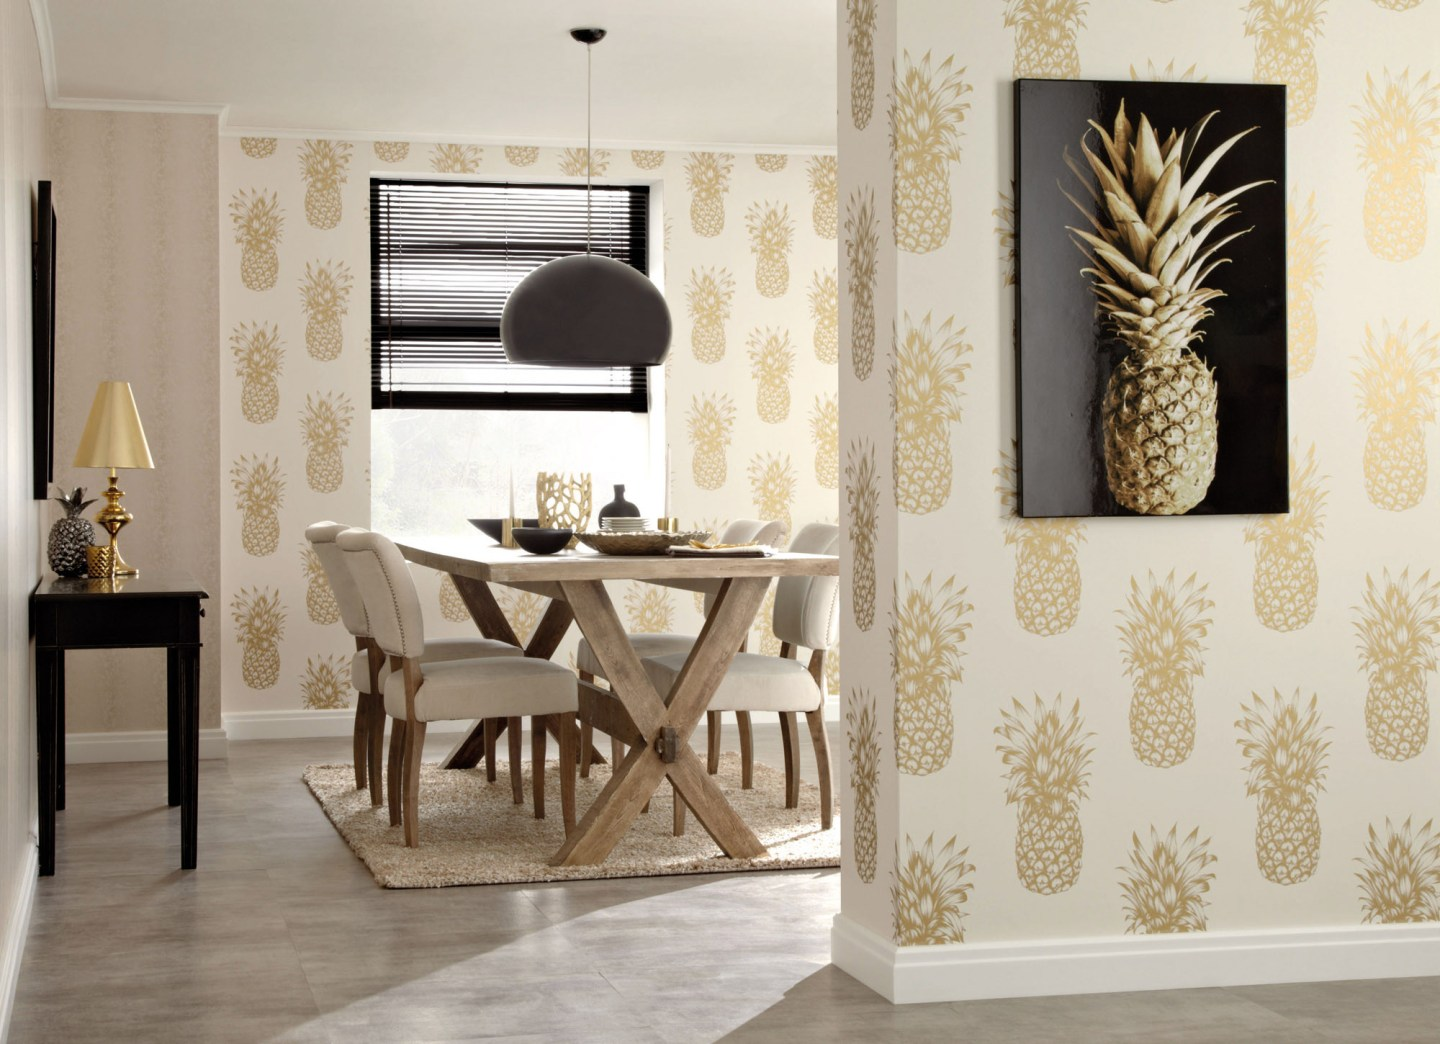 ARTHOUSE-Arthouse-Copacabana-Gold-Wallpaper-1420177-1-1440x1044 Pineapple Decor: Tips for Decorating Your Home with Southern Hospitality